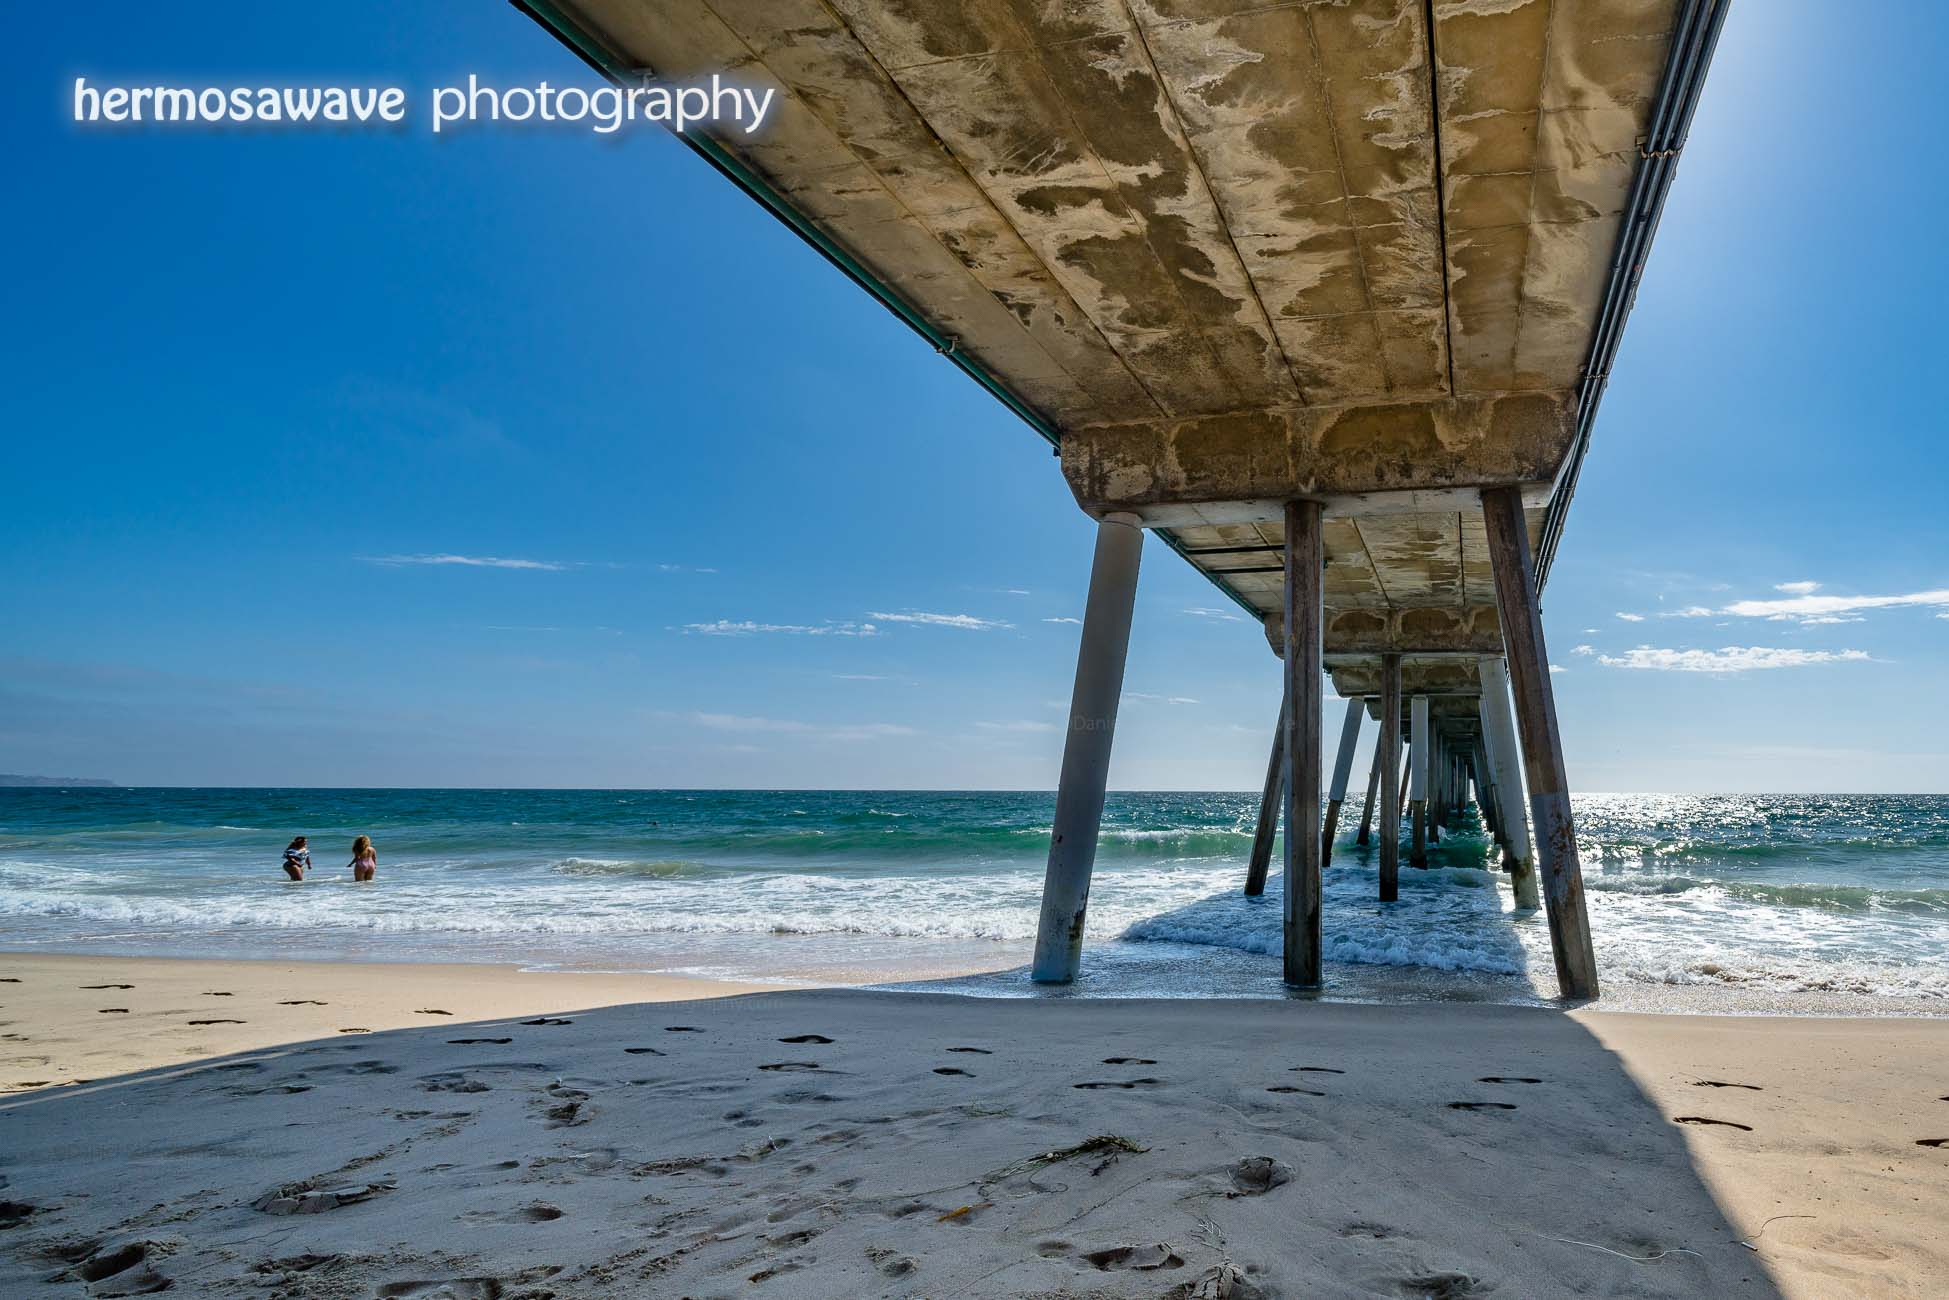 Afternoon Under the Pier